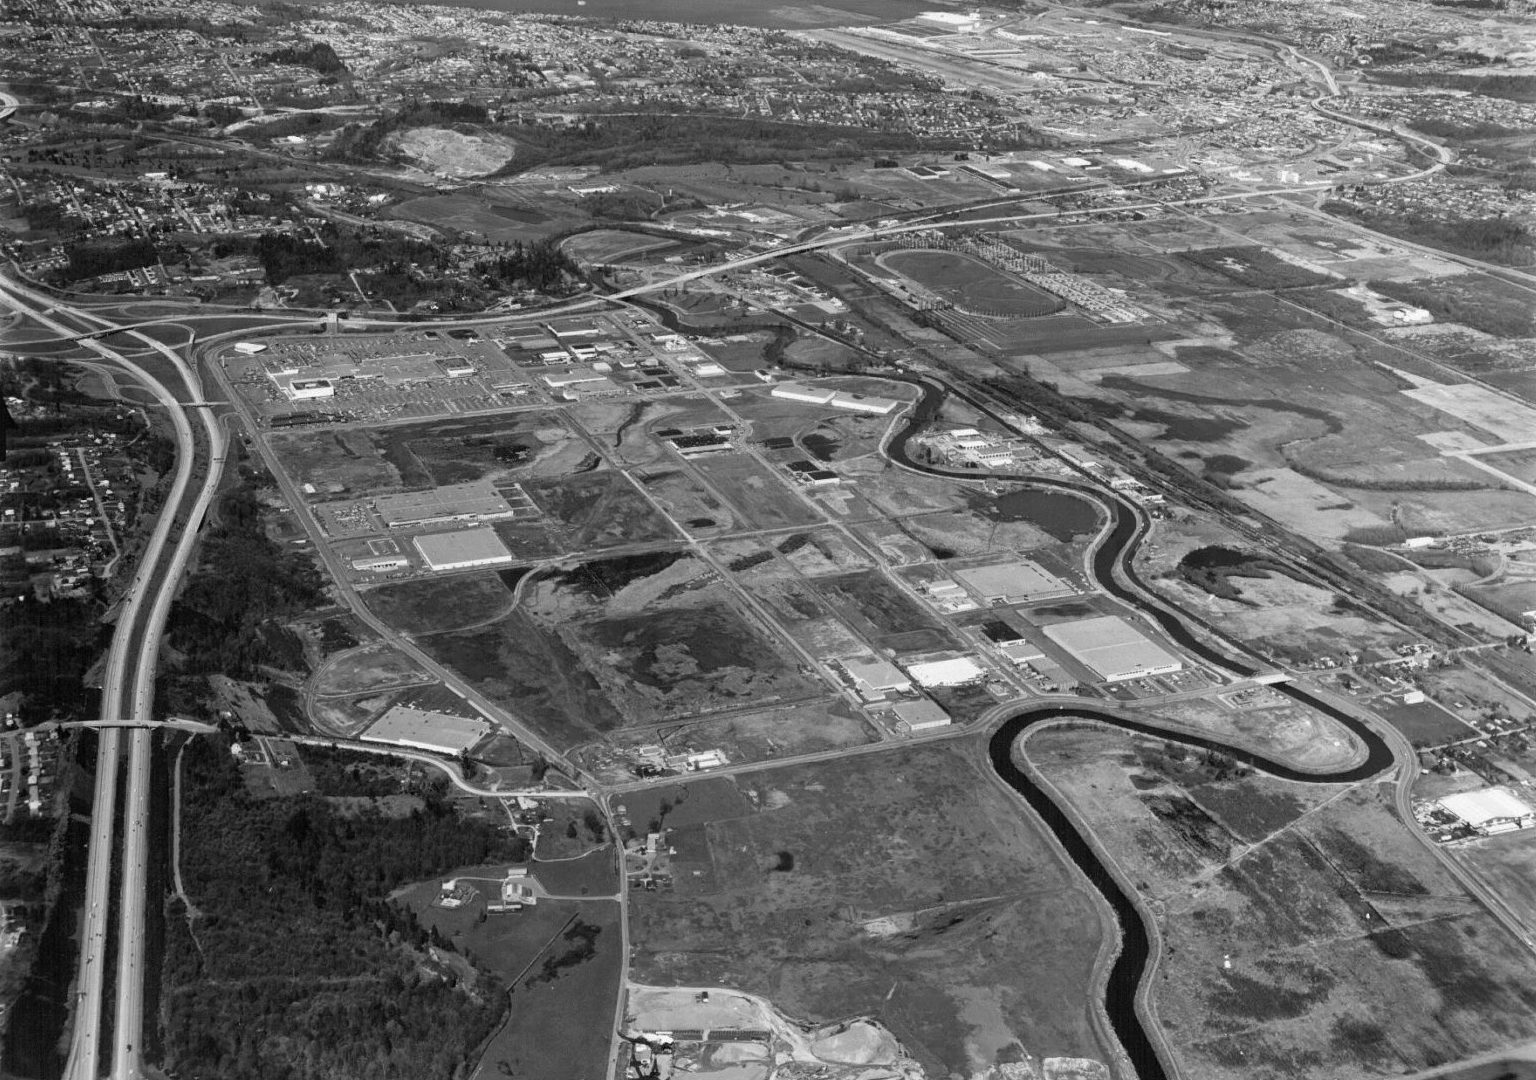 1971 black and white aerial view photo